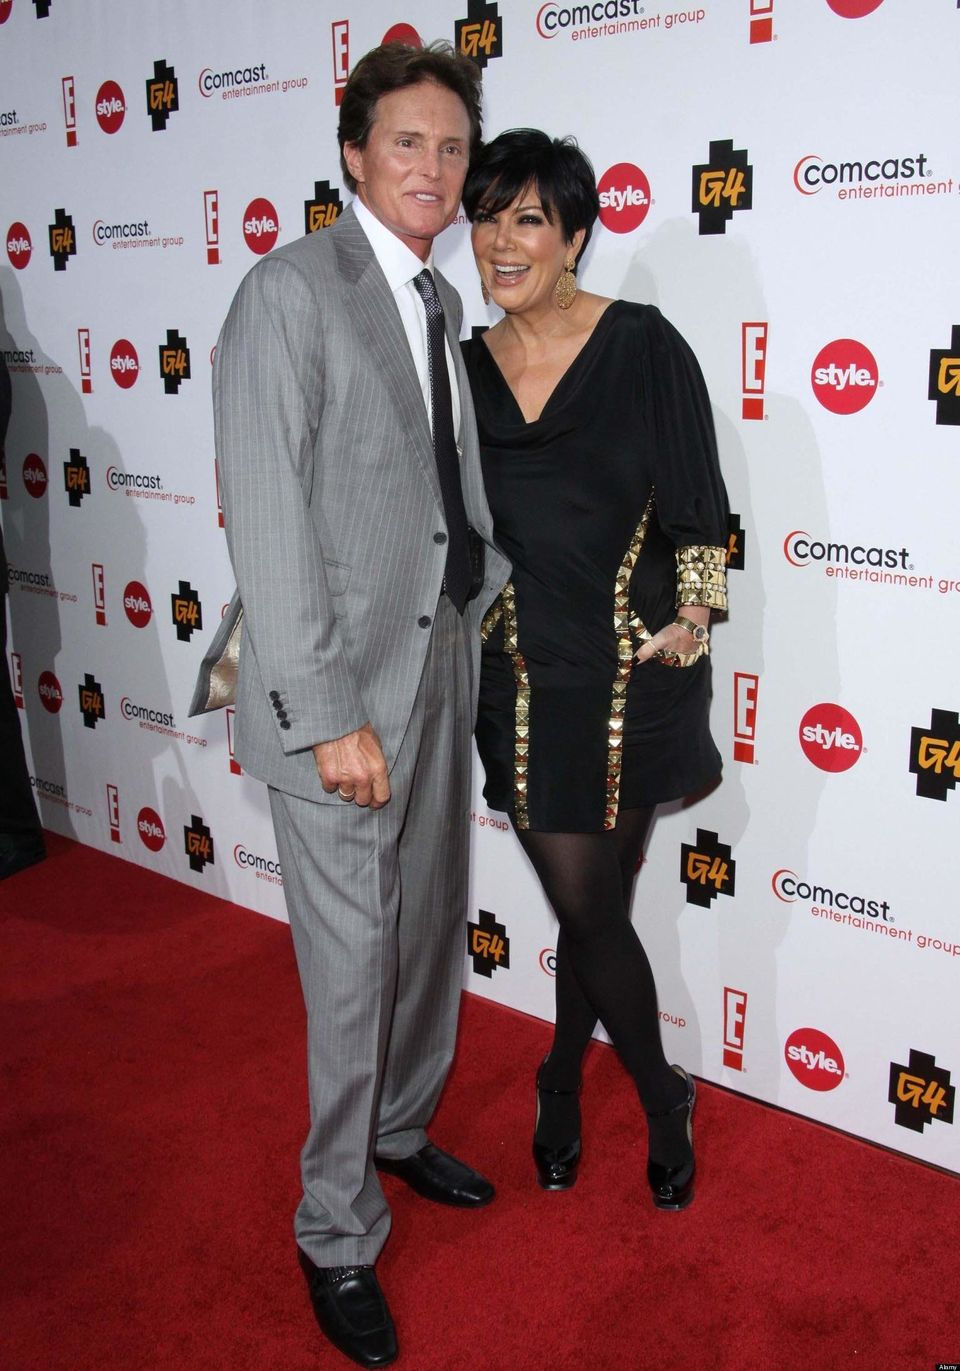 "The Kris and Bruce Jenner <a href=""https://www.huffpost.com/entry/kris-jenner-bruce-jenner-divorce-rumors-continue_n_2284754"""